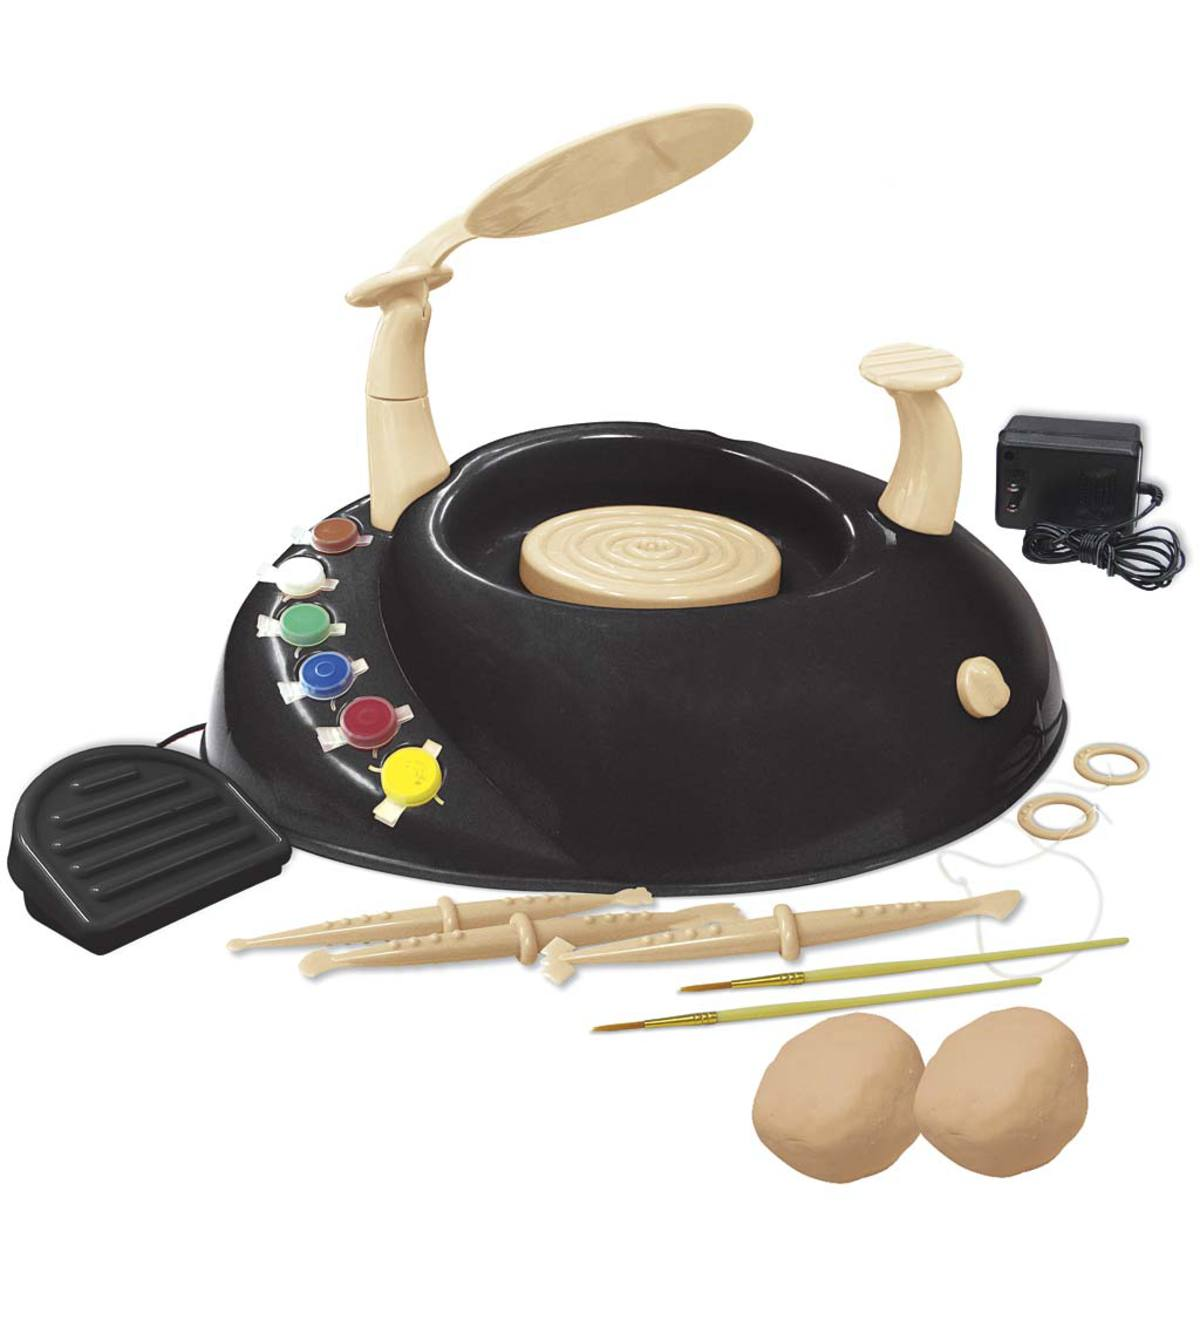 Pottery Wheel Kit, Includes Pottery Wheel, Air Dry Clay, Three Clay Knives, Cutting Cord, Six Paint Pots, Two Paintbrushes, and Instructions